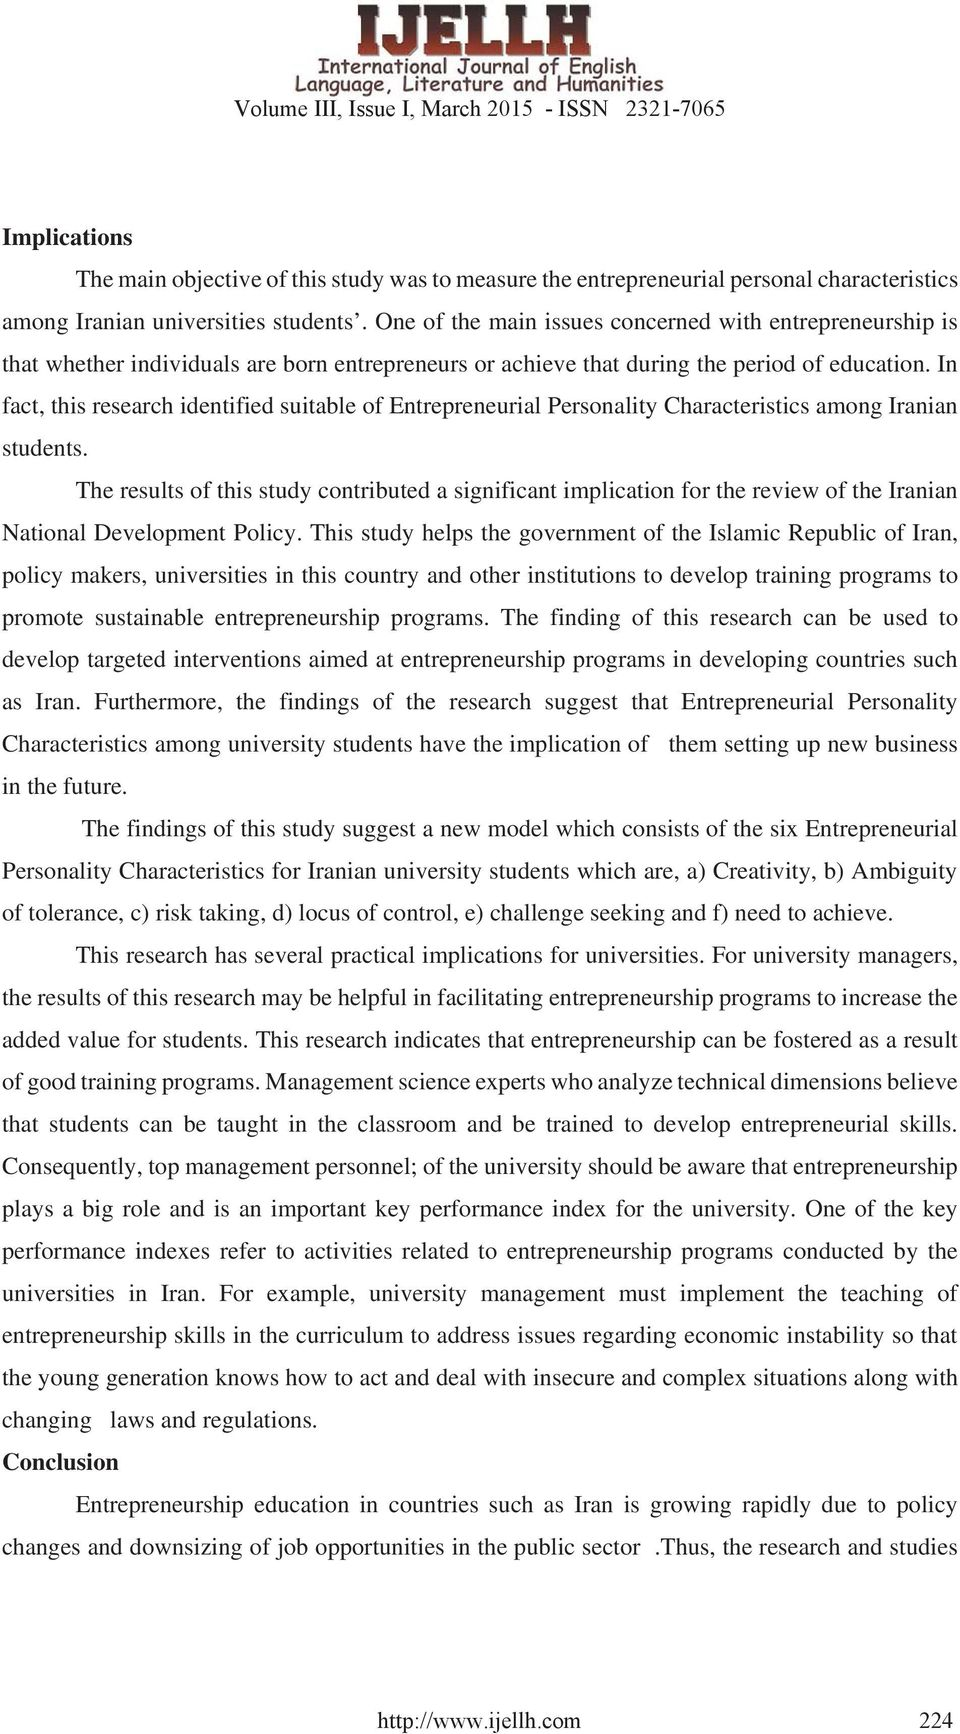 In fact, this research identified suitable of Entrepreneurial Personality Characteristics among Iranian students.